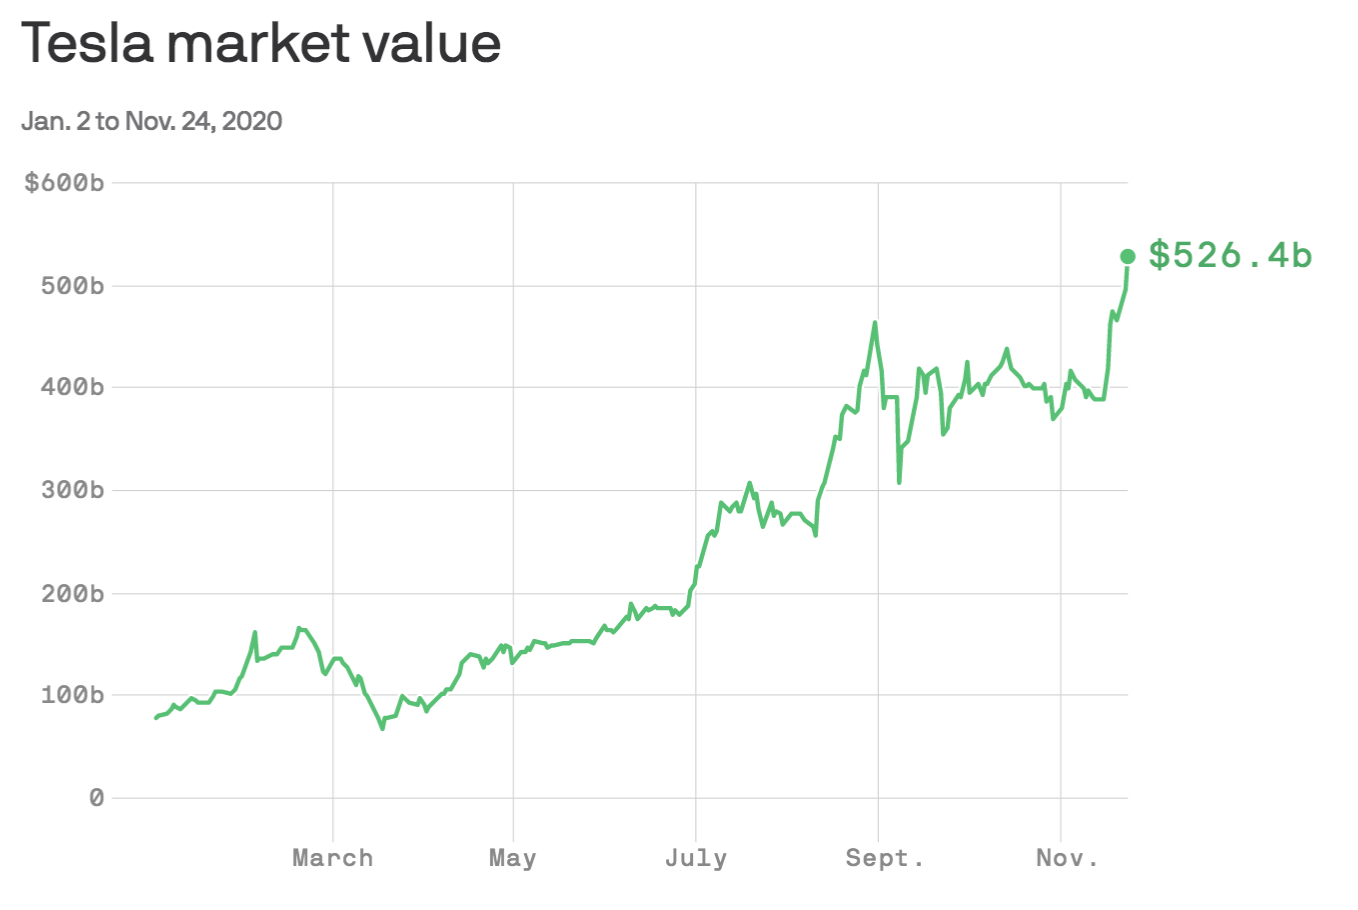 Tesla's market capitalization blew past $500 billion for the first time yesterday.